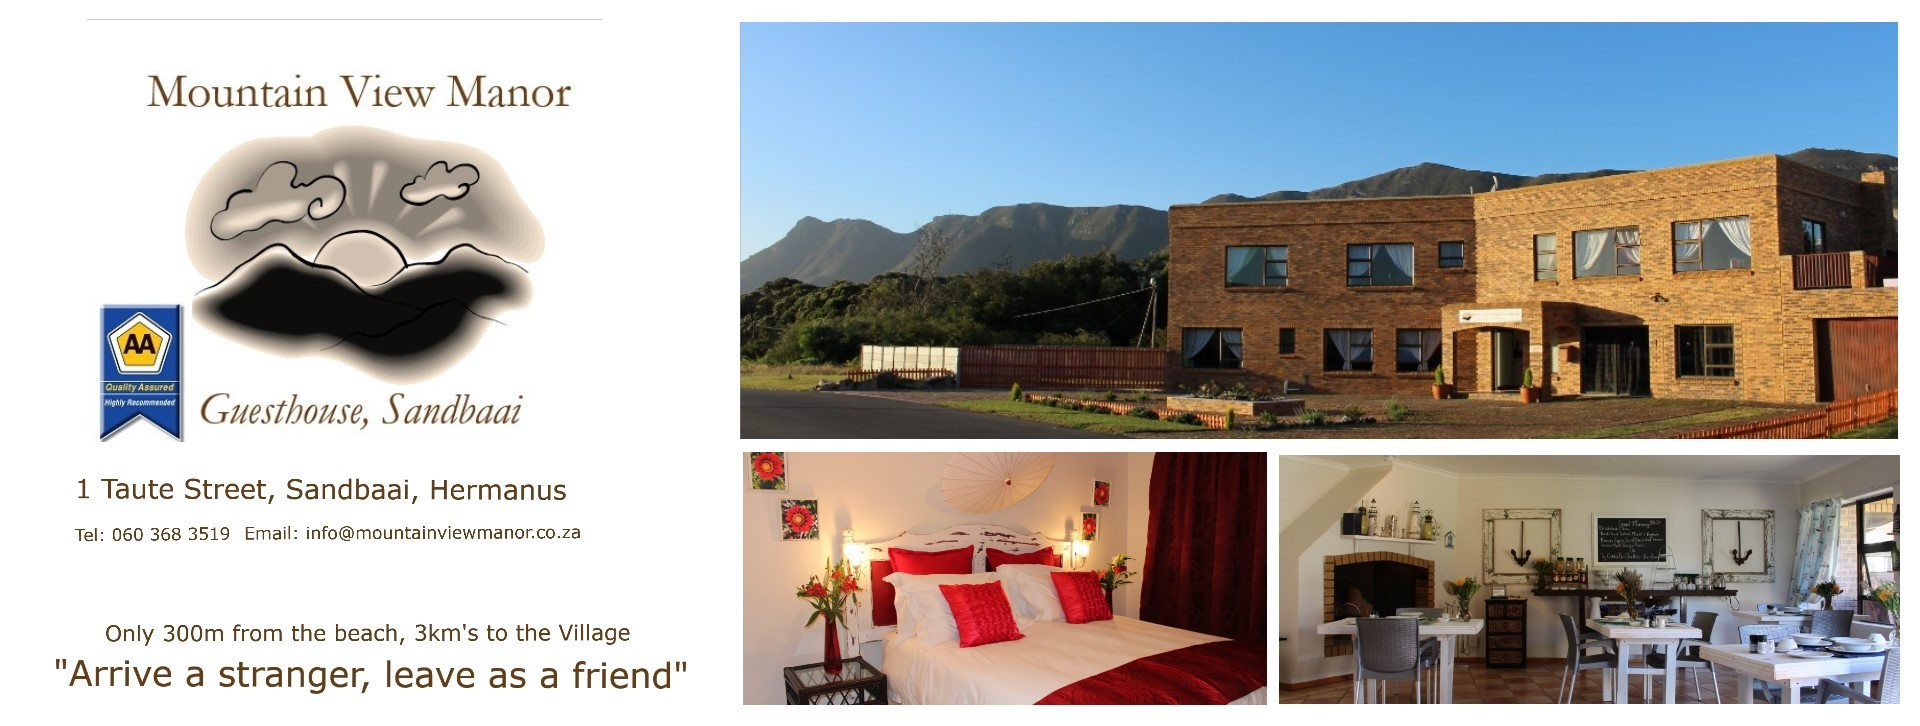 Mountain View Manor, Hermanus Accommodation, Guesthouse, Sandbaai, Western cape, South Africa